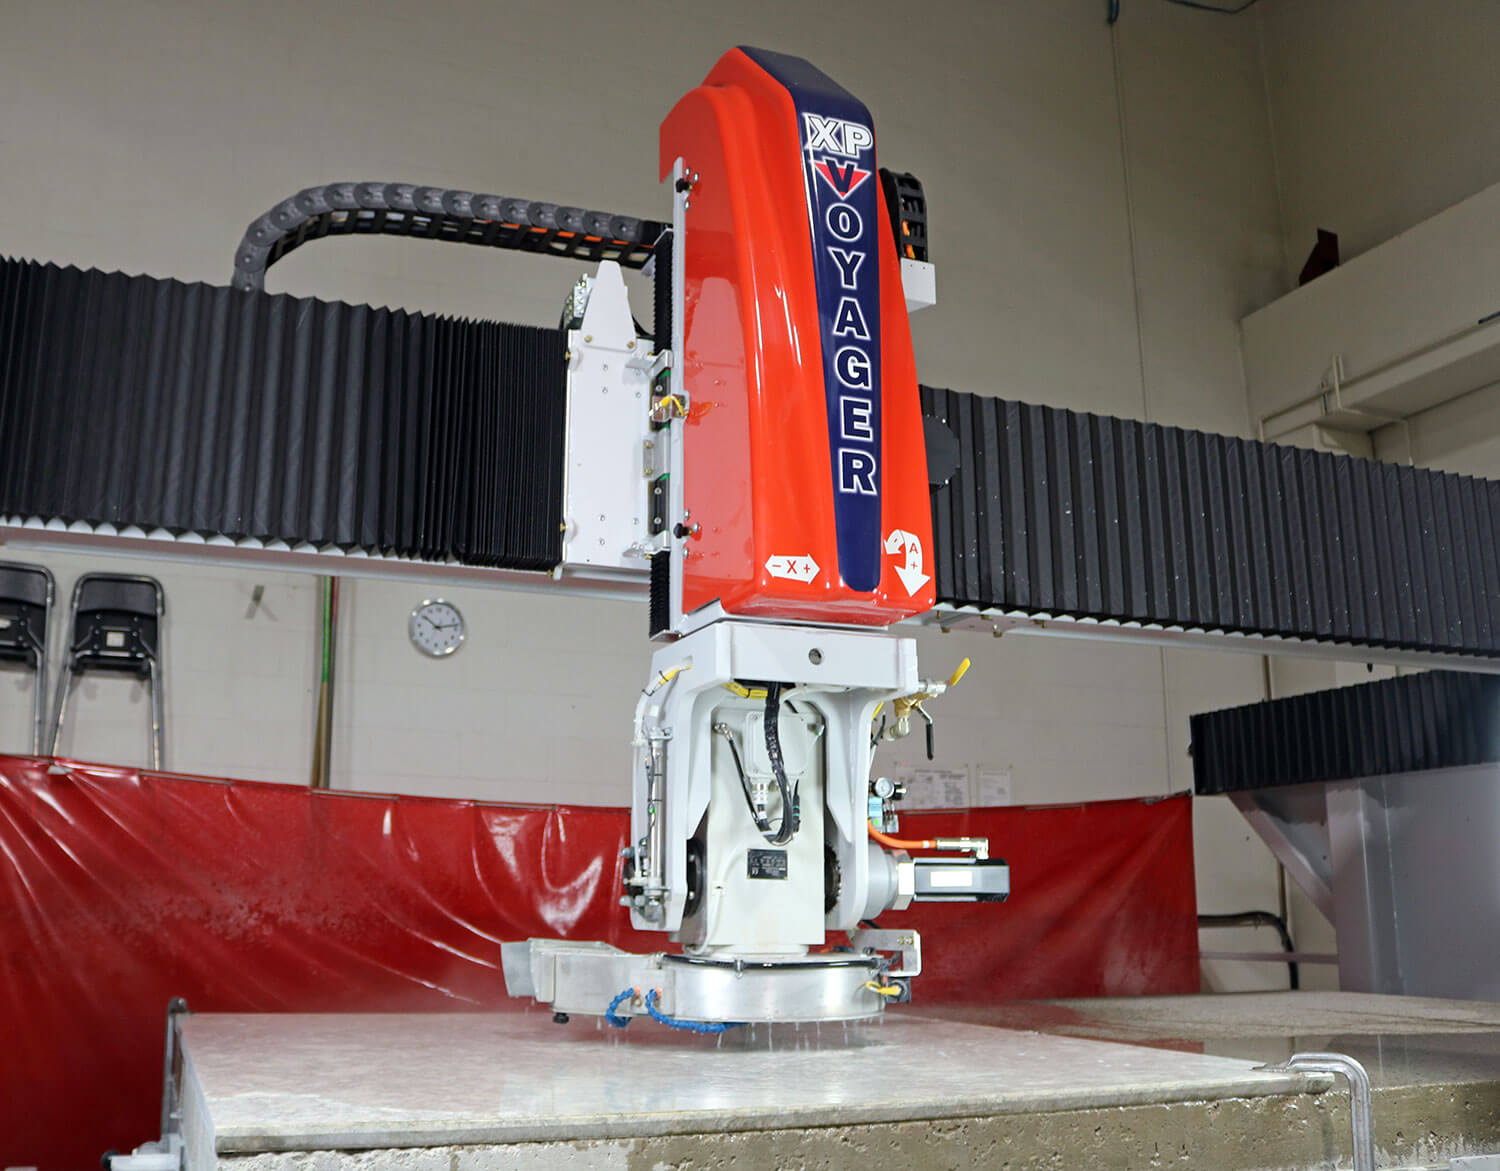 Routing & Coring Tools | VOYAGER XP 5-Axis CNC Saw for Stone Cutting